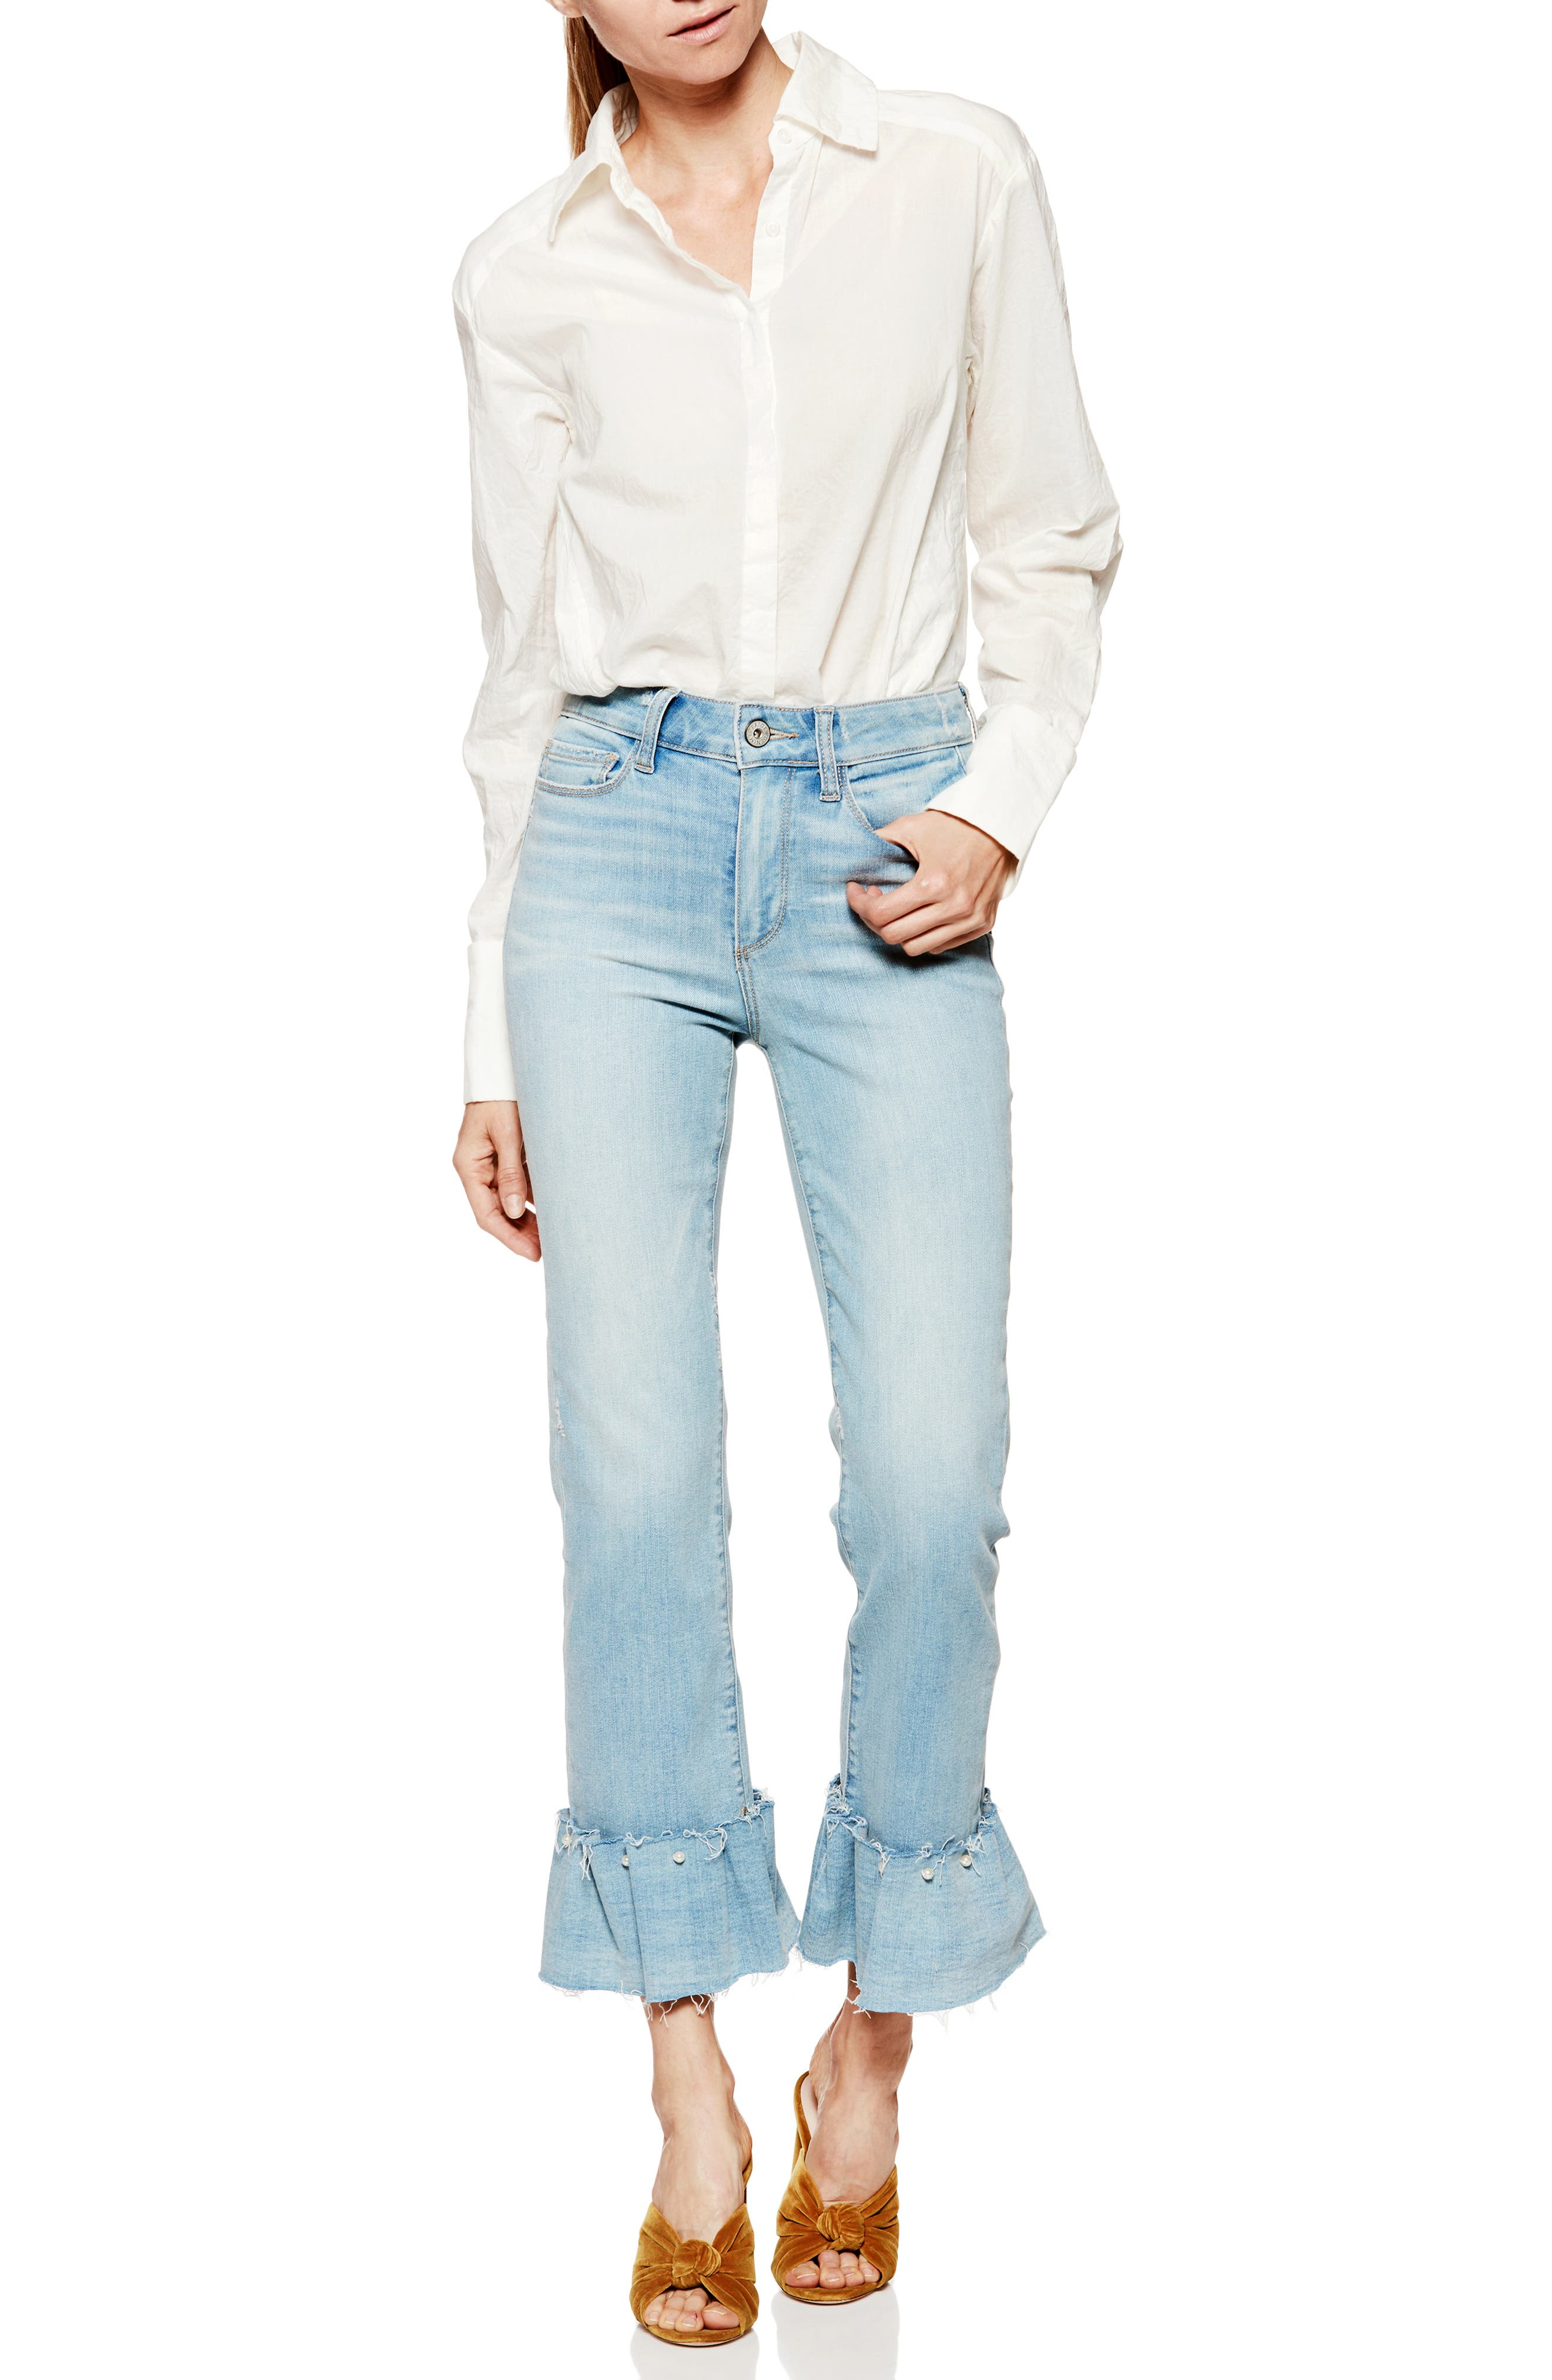 Transcend Vintage - Hoxton Embellished Ruffle High Waist Jeans,                             Alternate thumbnail 5, color,                             PALMS